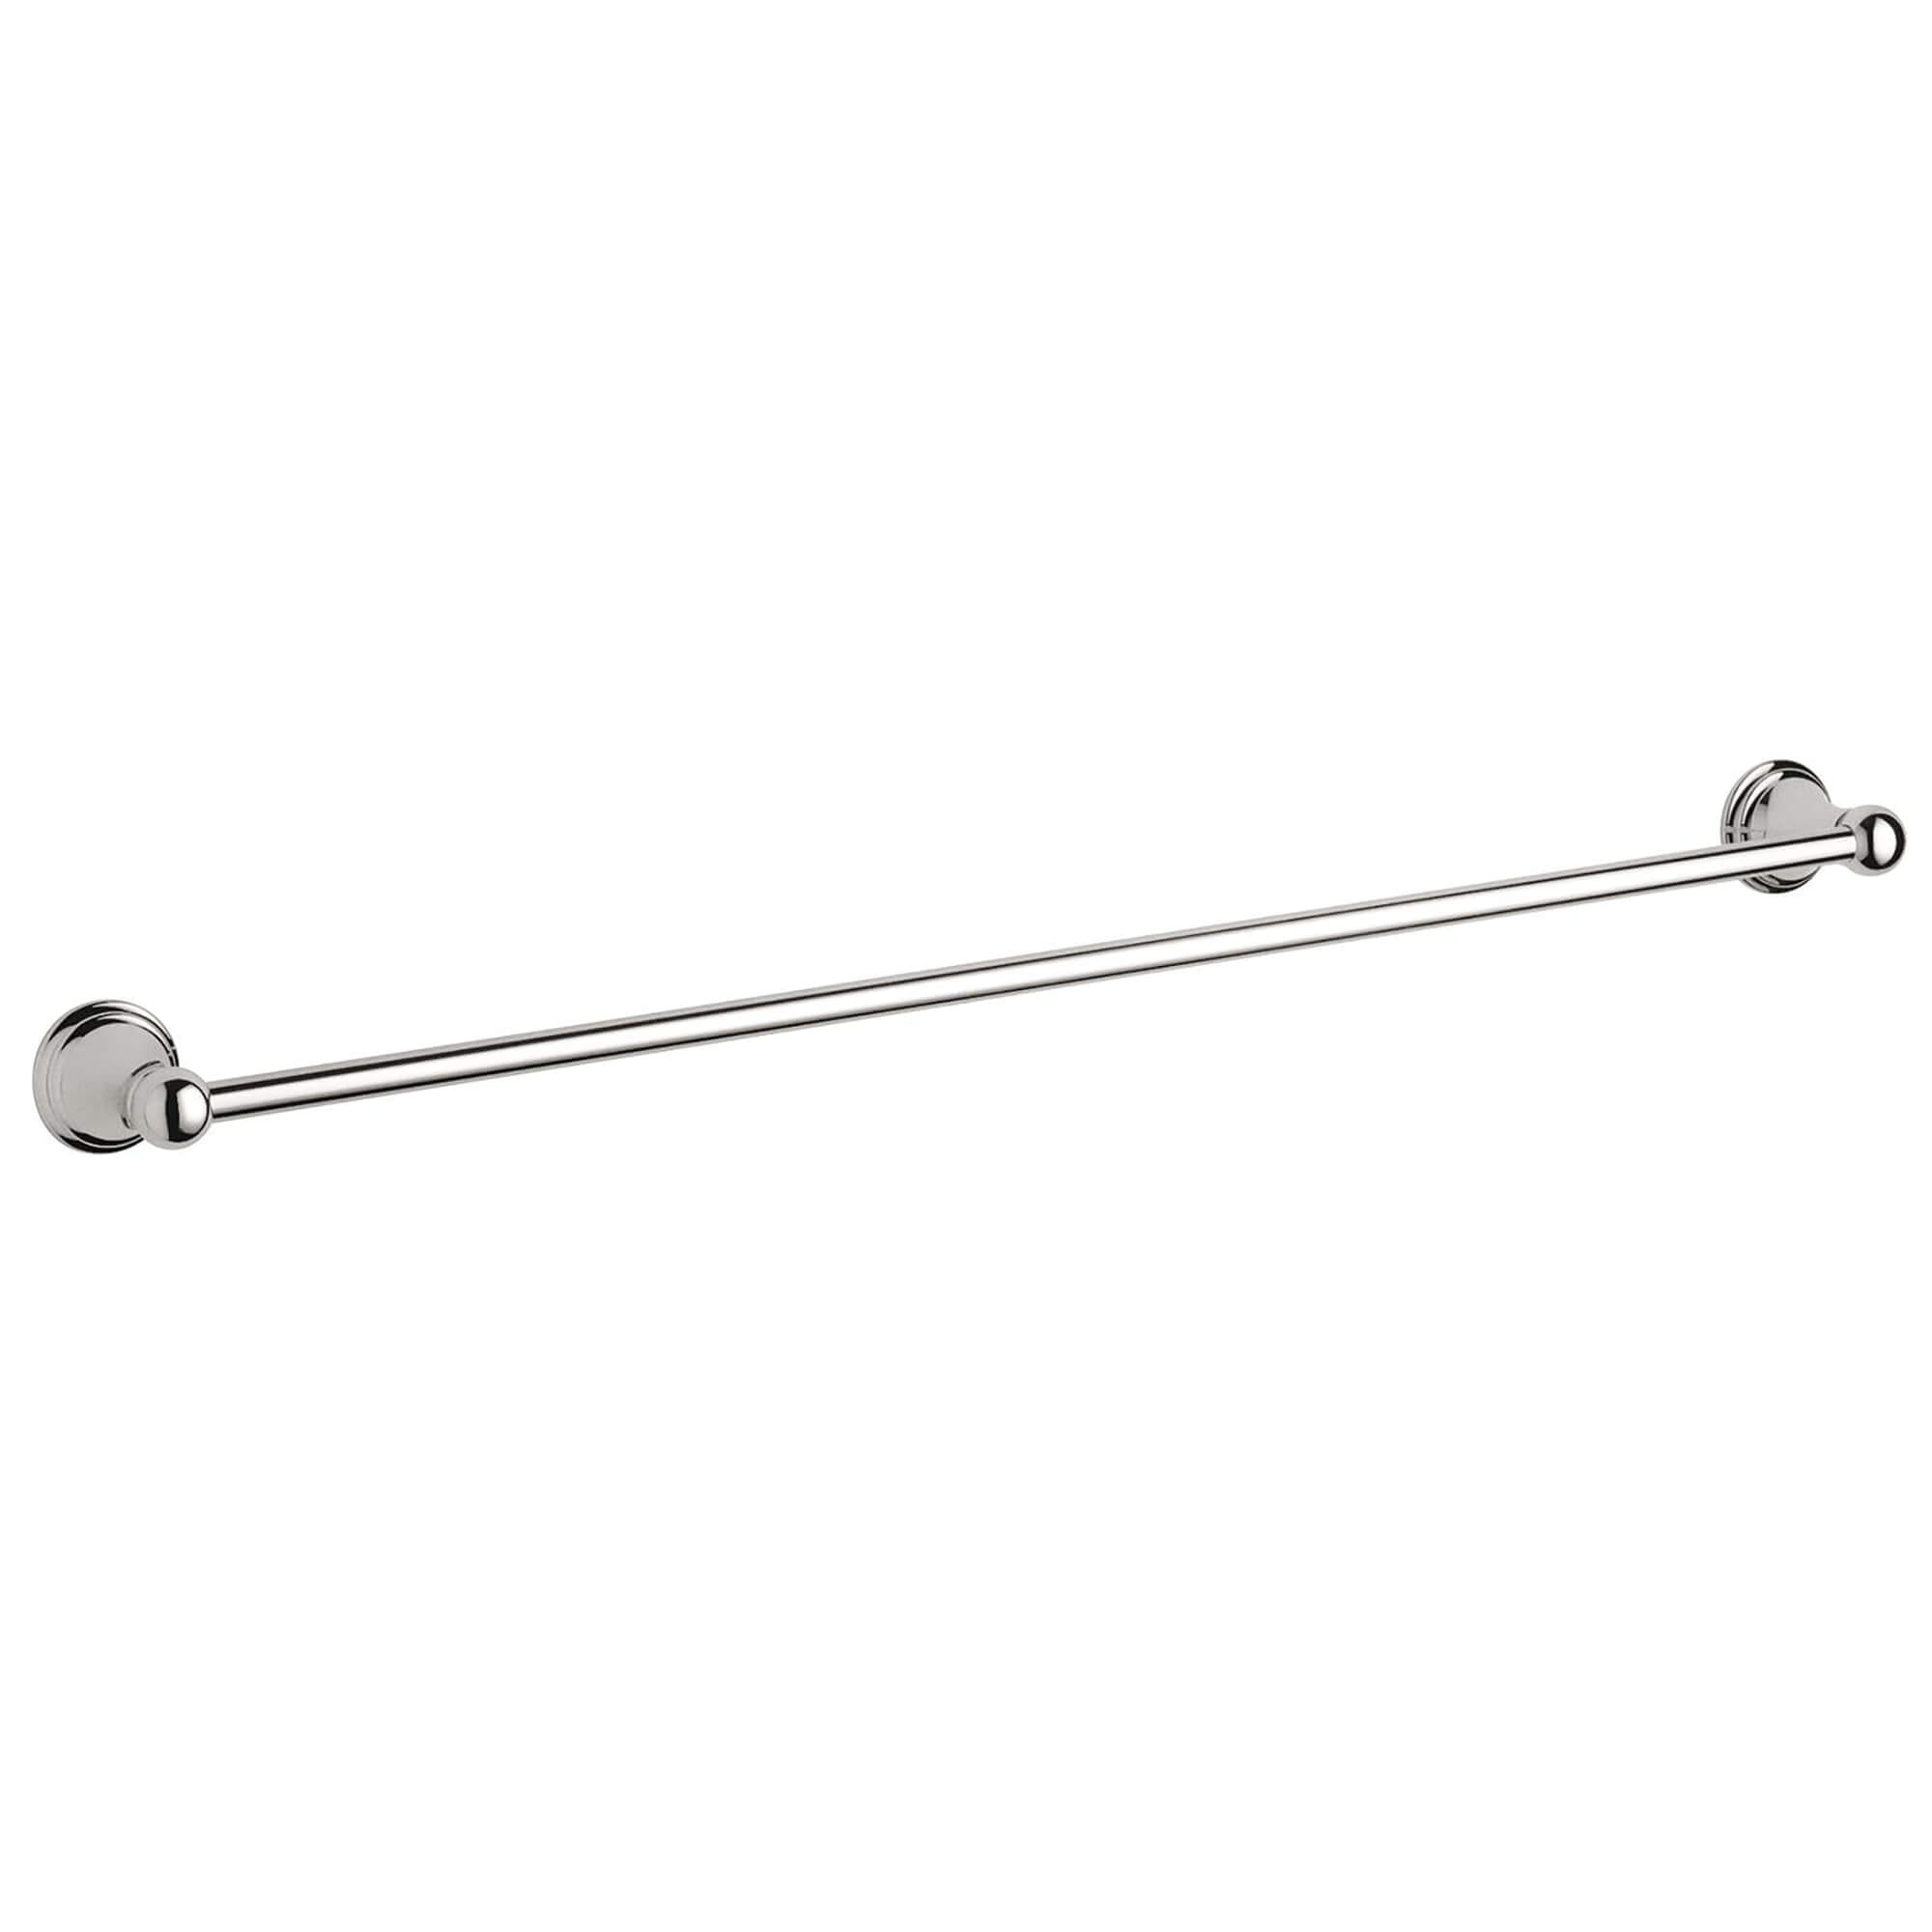 Towel Bar GROHE POLISHED NICKEL